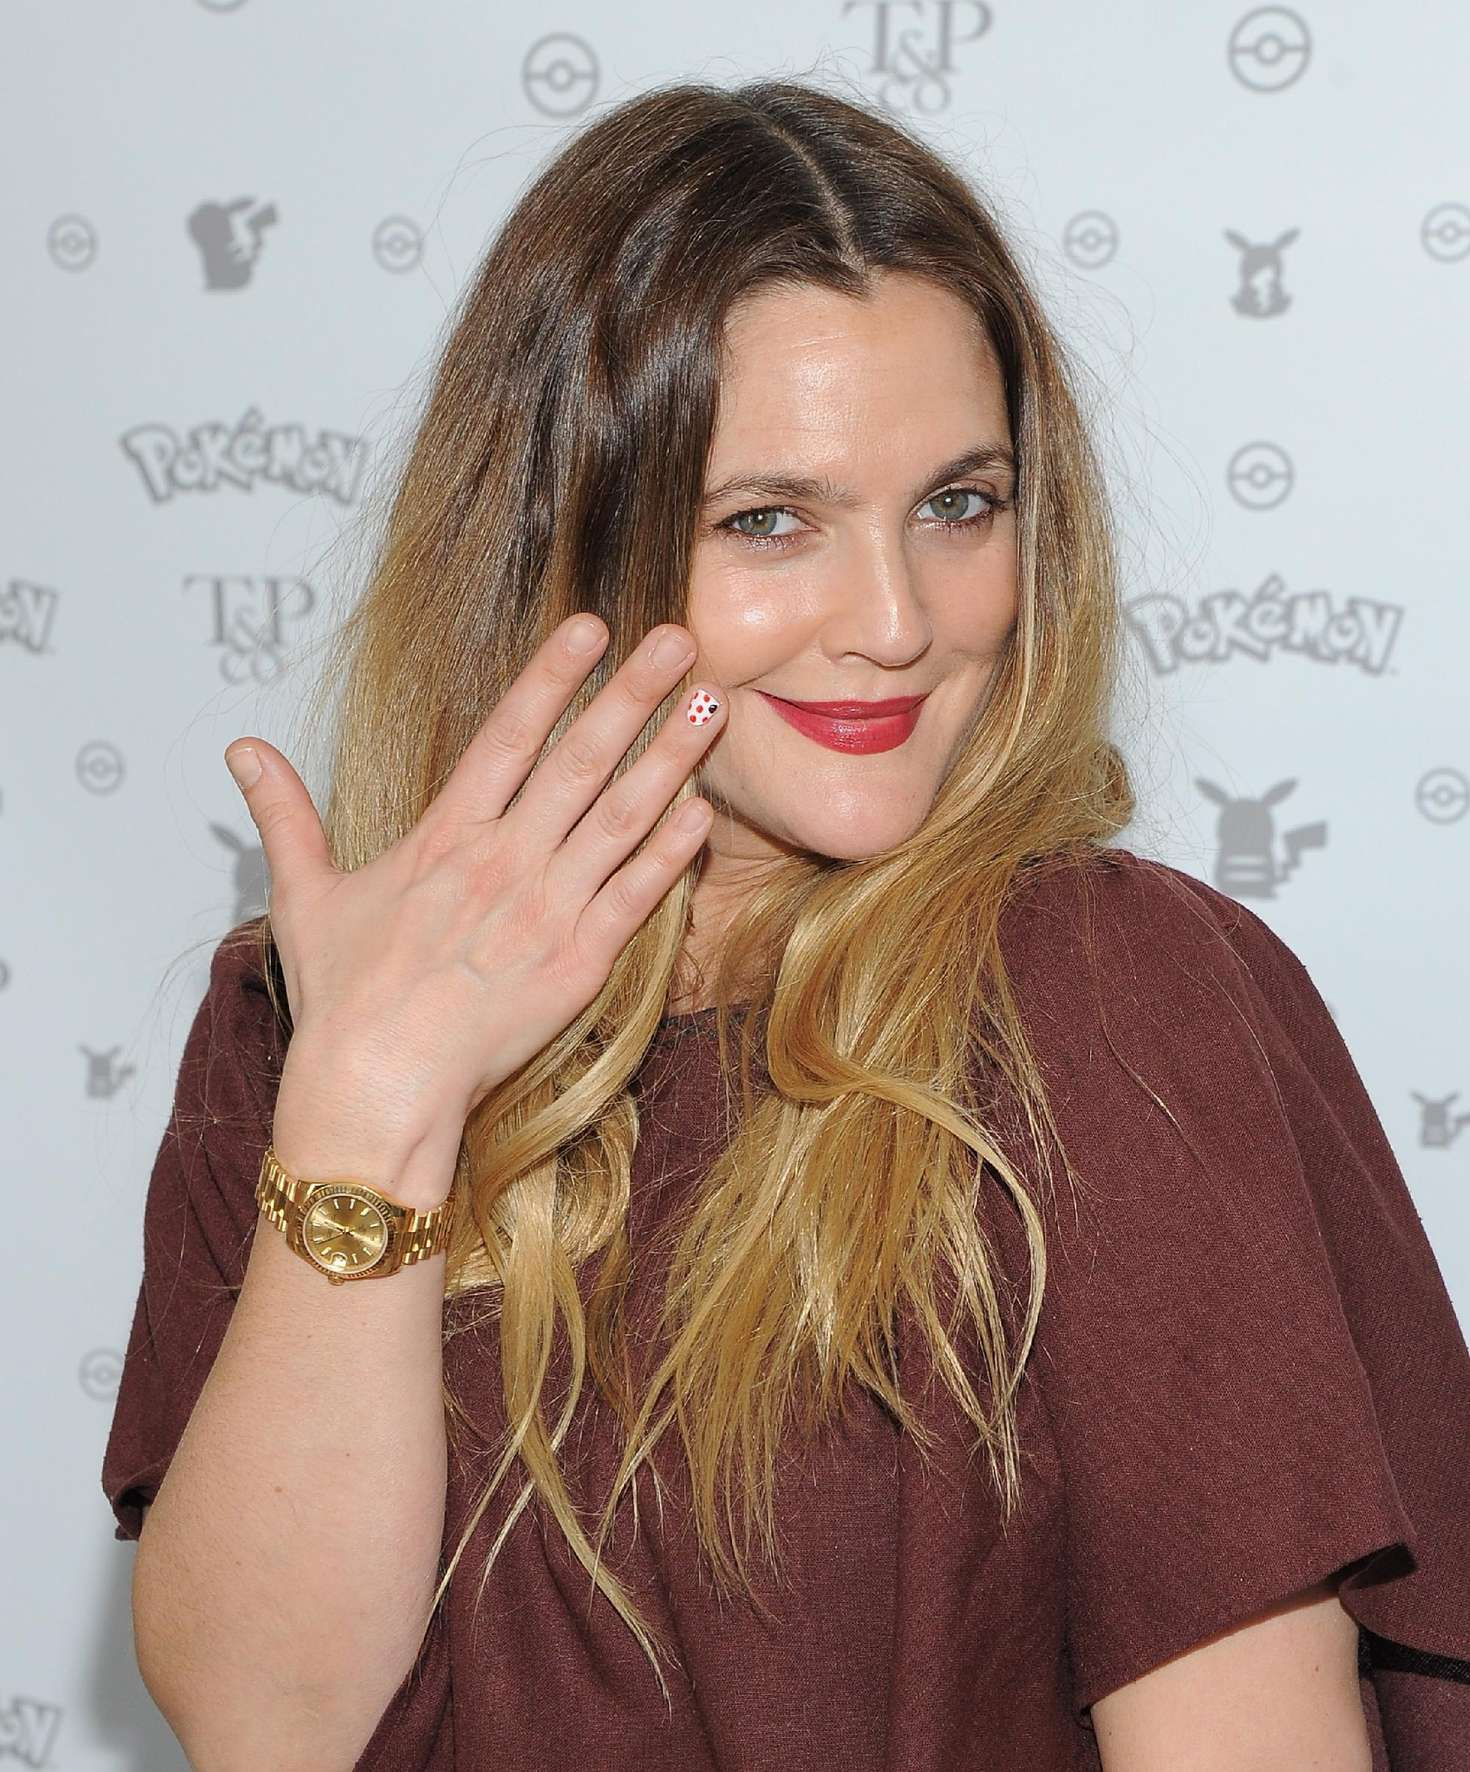 Drew Barrymore 2016 : Drew Barrymore: Tracy Paul and Co Presents Pokemon Afternoon Soiree -13